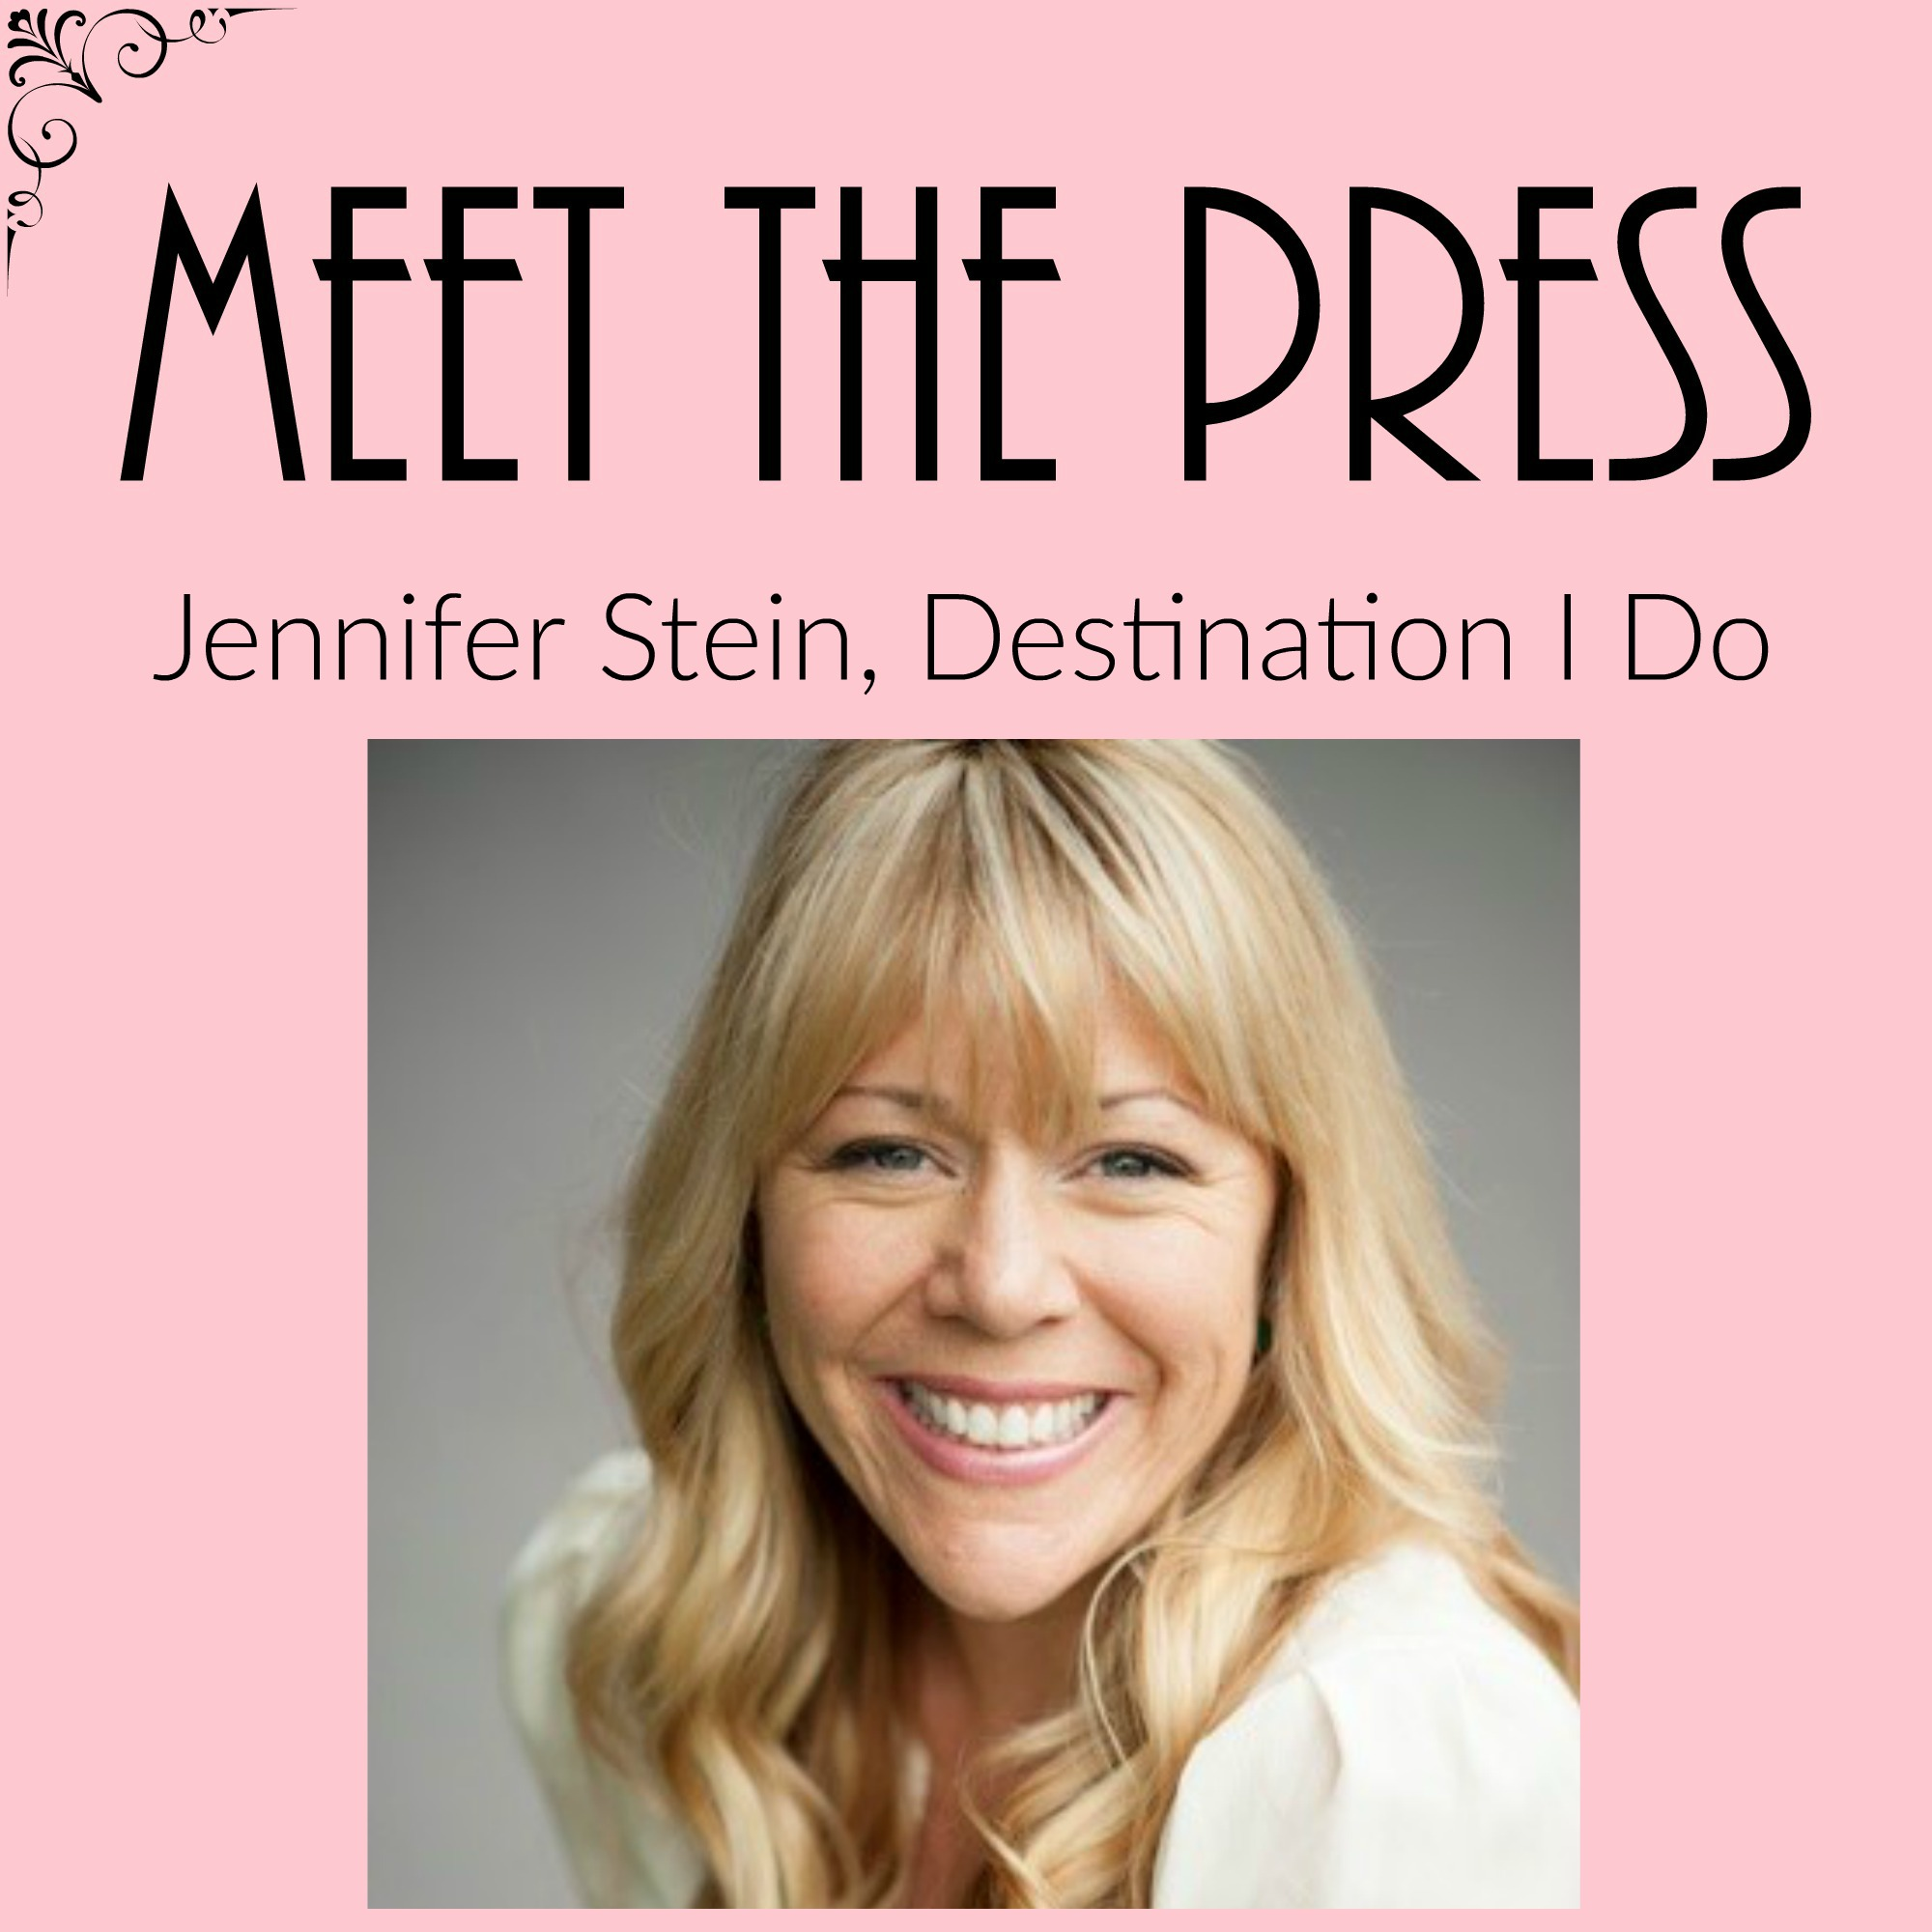 Meet Jennifer Stein, Destination I Do